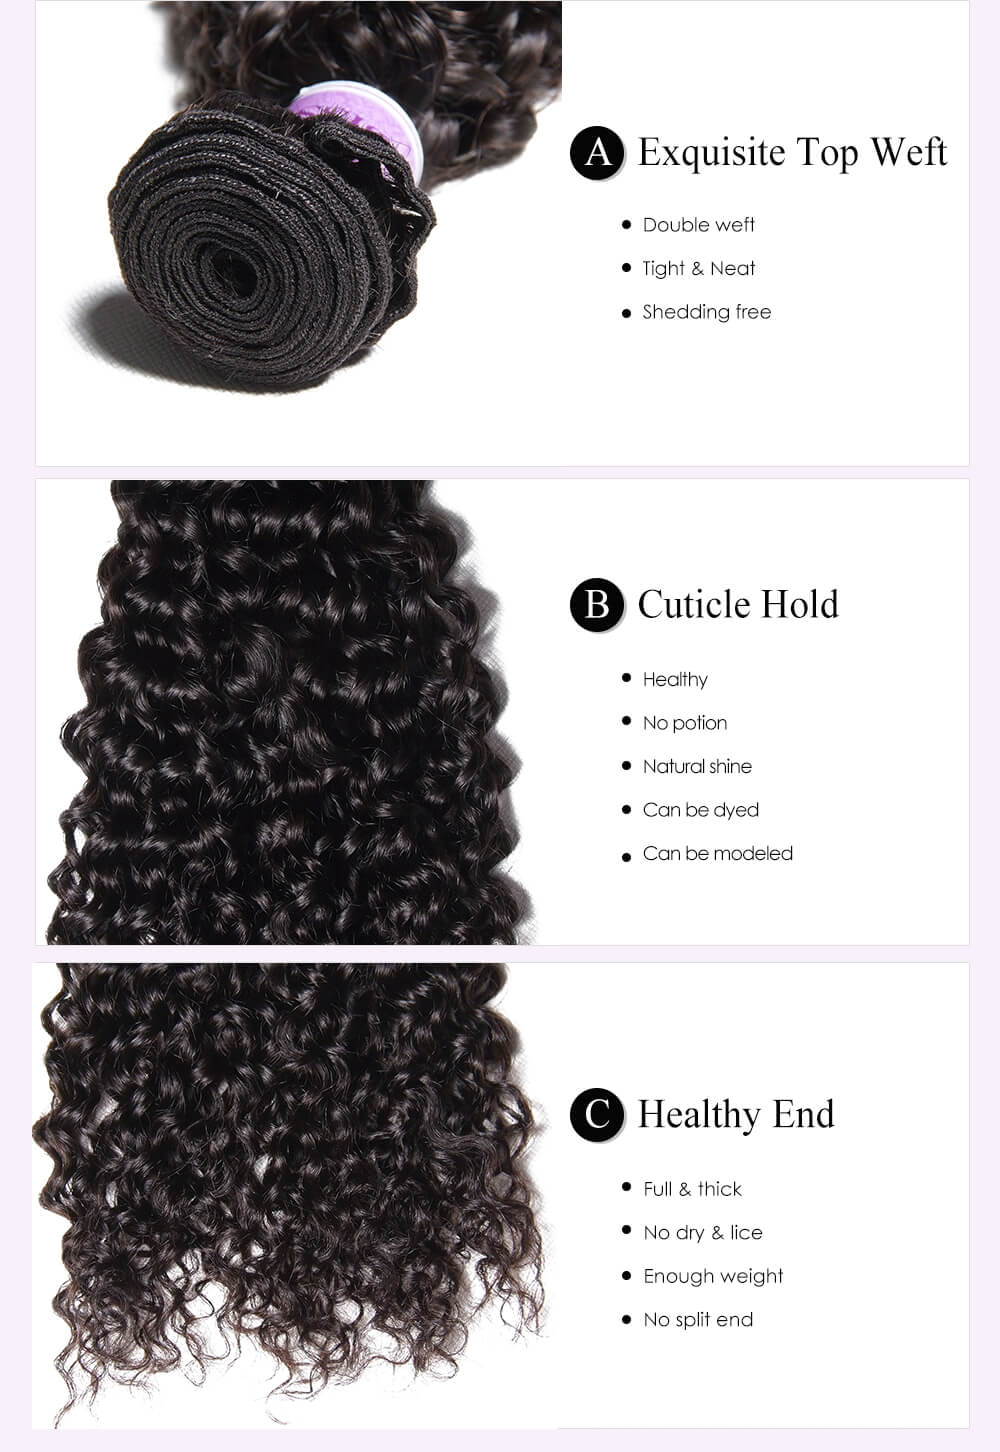 Unice kysiss Peruvian curly 4 bundles hair